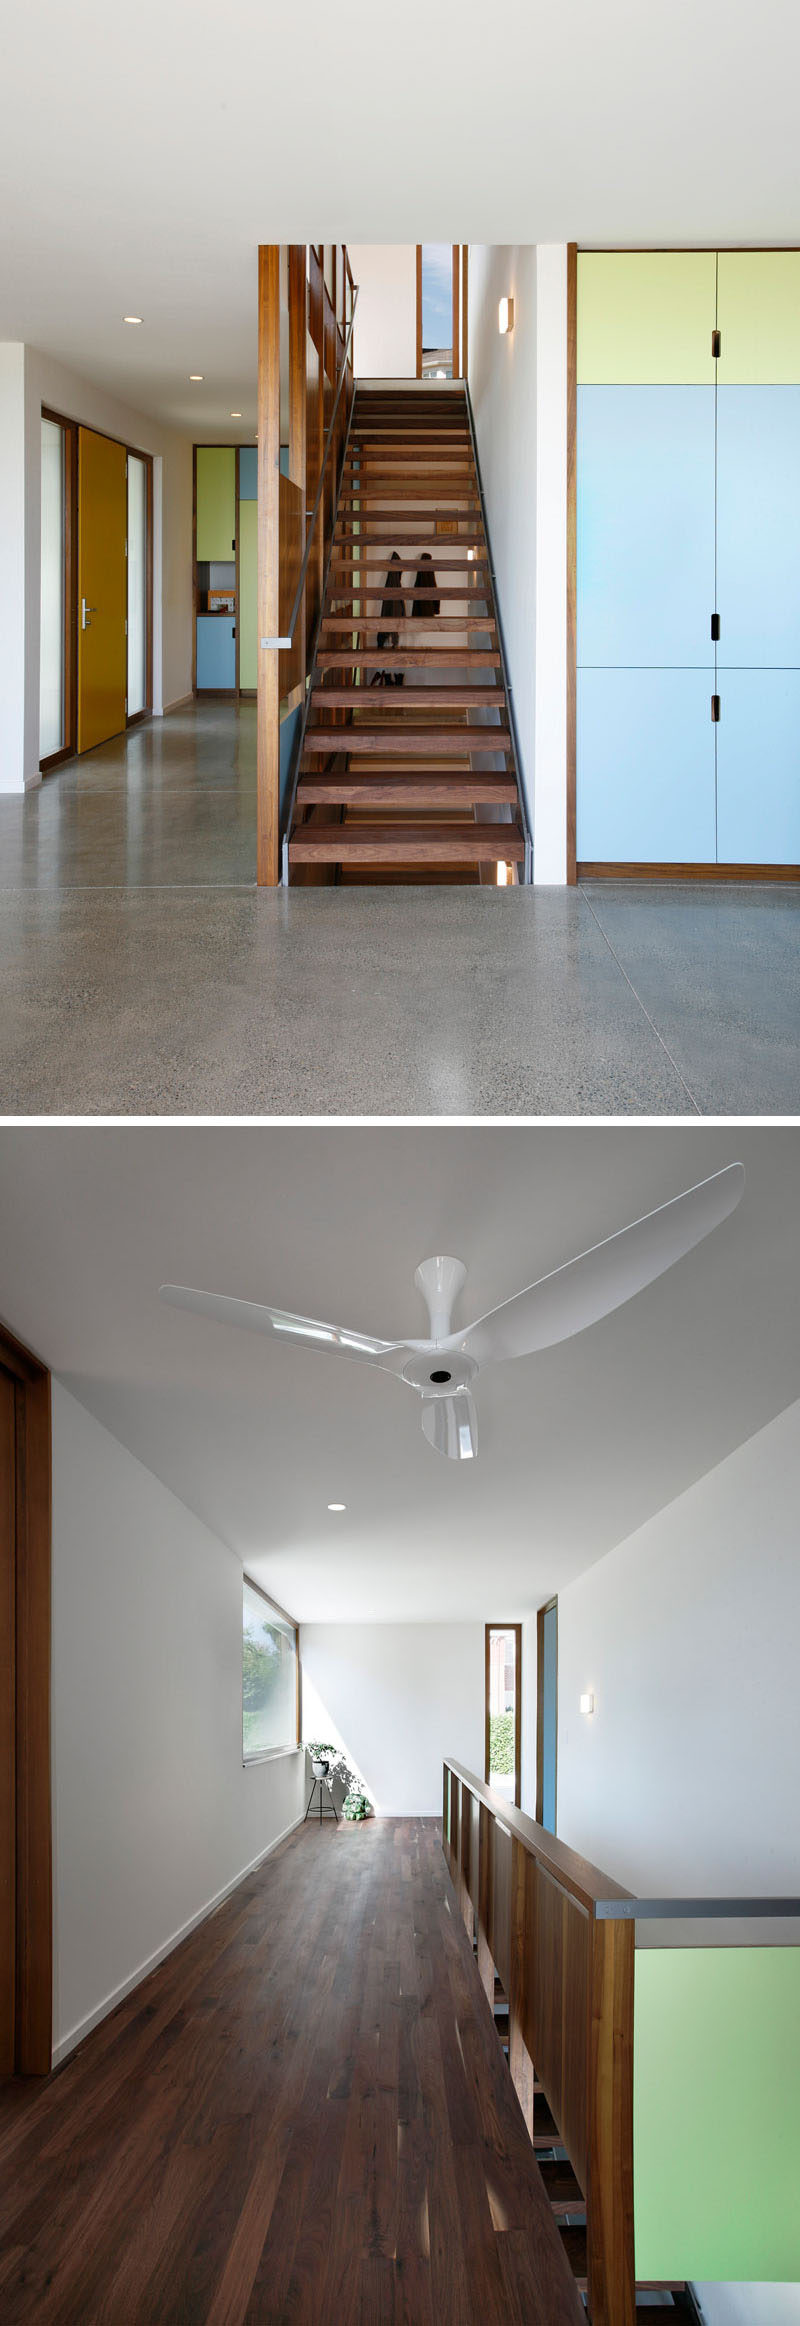 In this modern house, a walnut staircase that leads to the various levels of the house, while walnut has also been used for the flooring in the upper level of the home. #WalnutStaircase #WalnutFlooring #Stairs